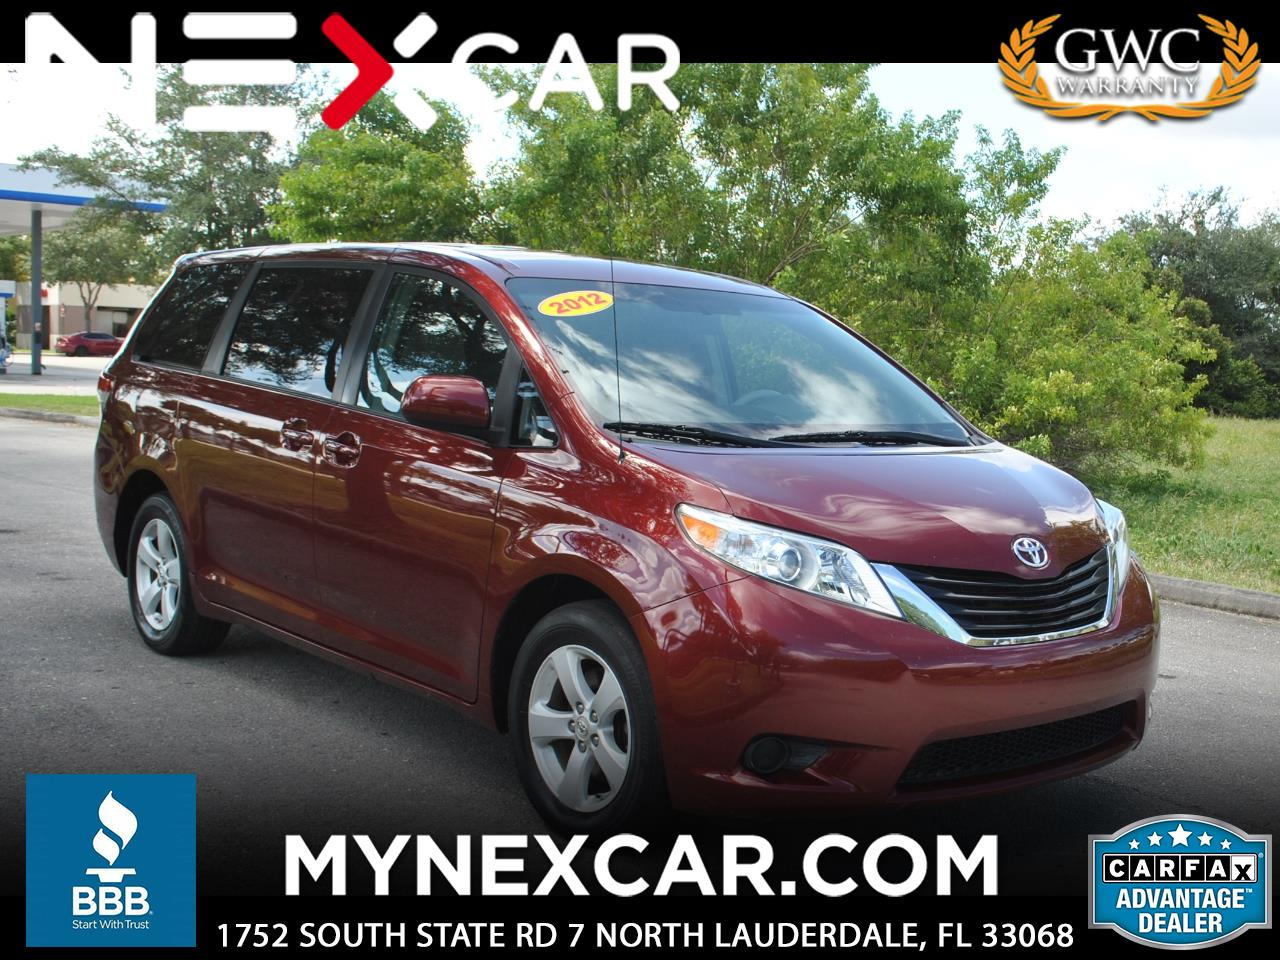 2012 Toyota Sienna 5dr 8-Pass Van I4 LE FWD (Natl)